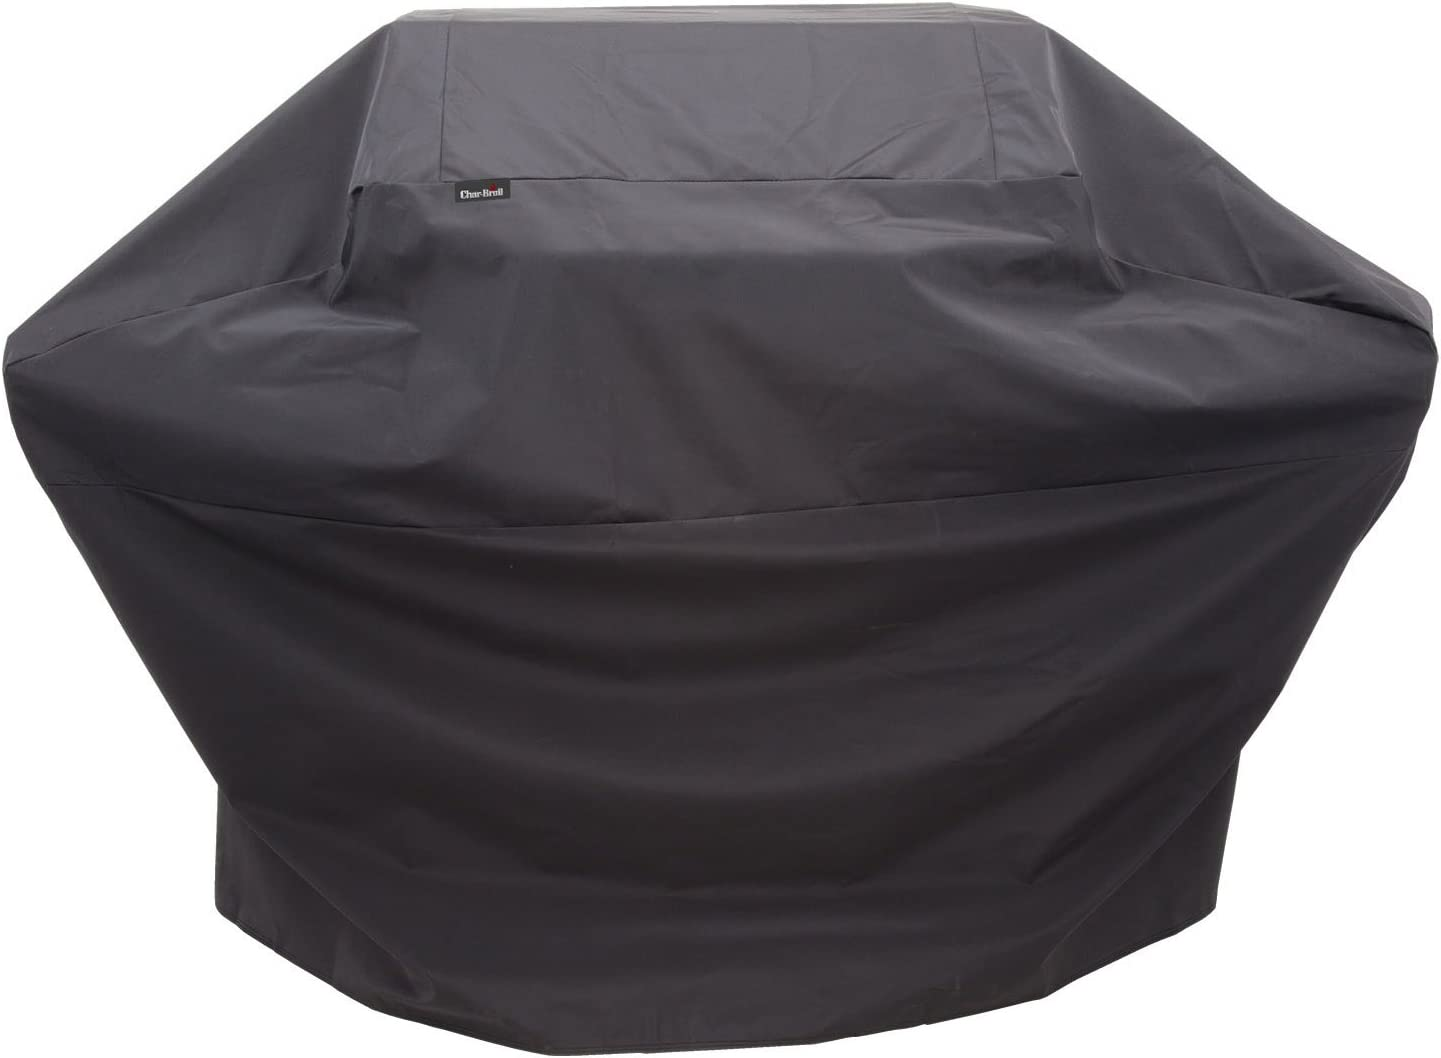 Amazon Com Char Broil Performance Grill Cover 3 4 Burner Large Garden Outdoor